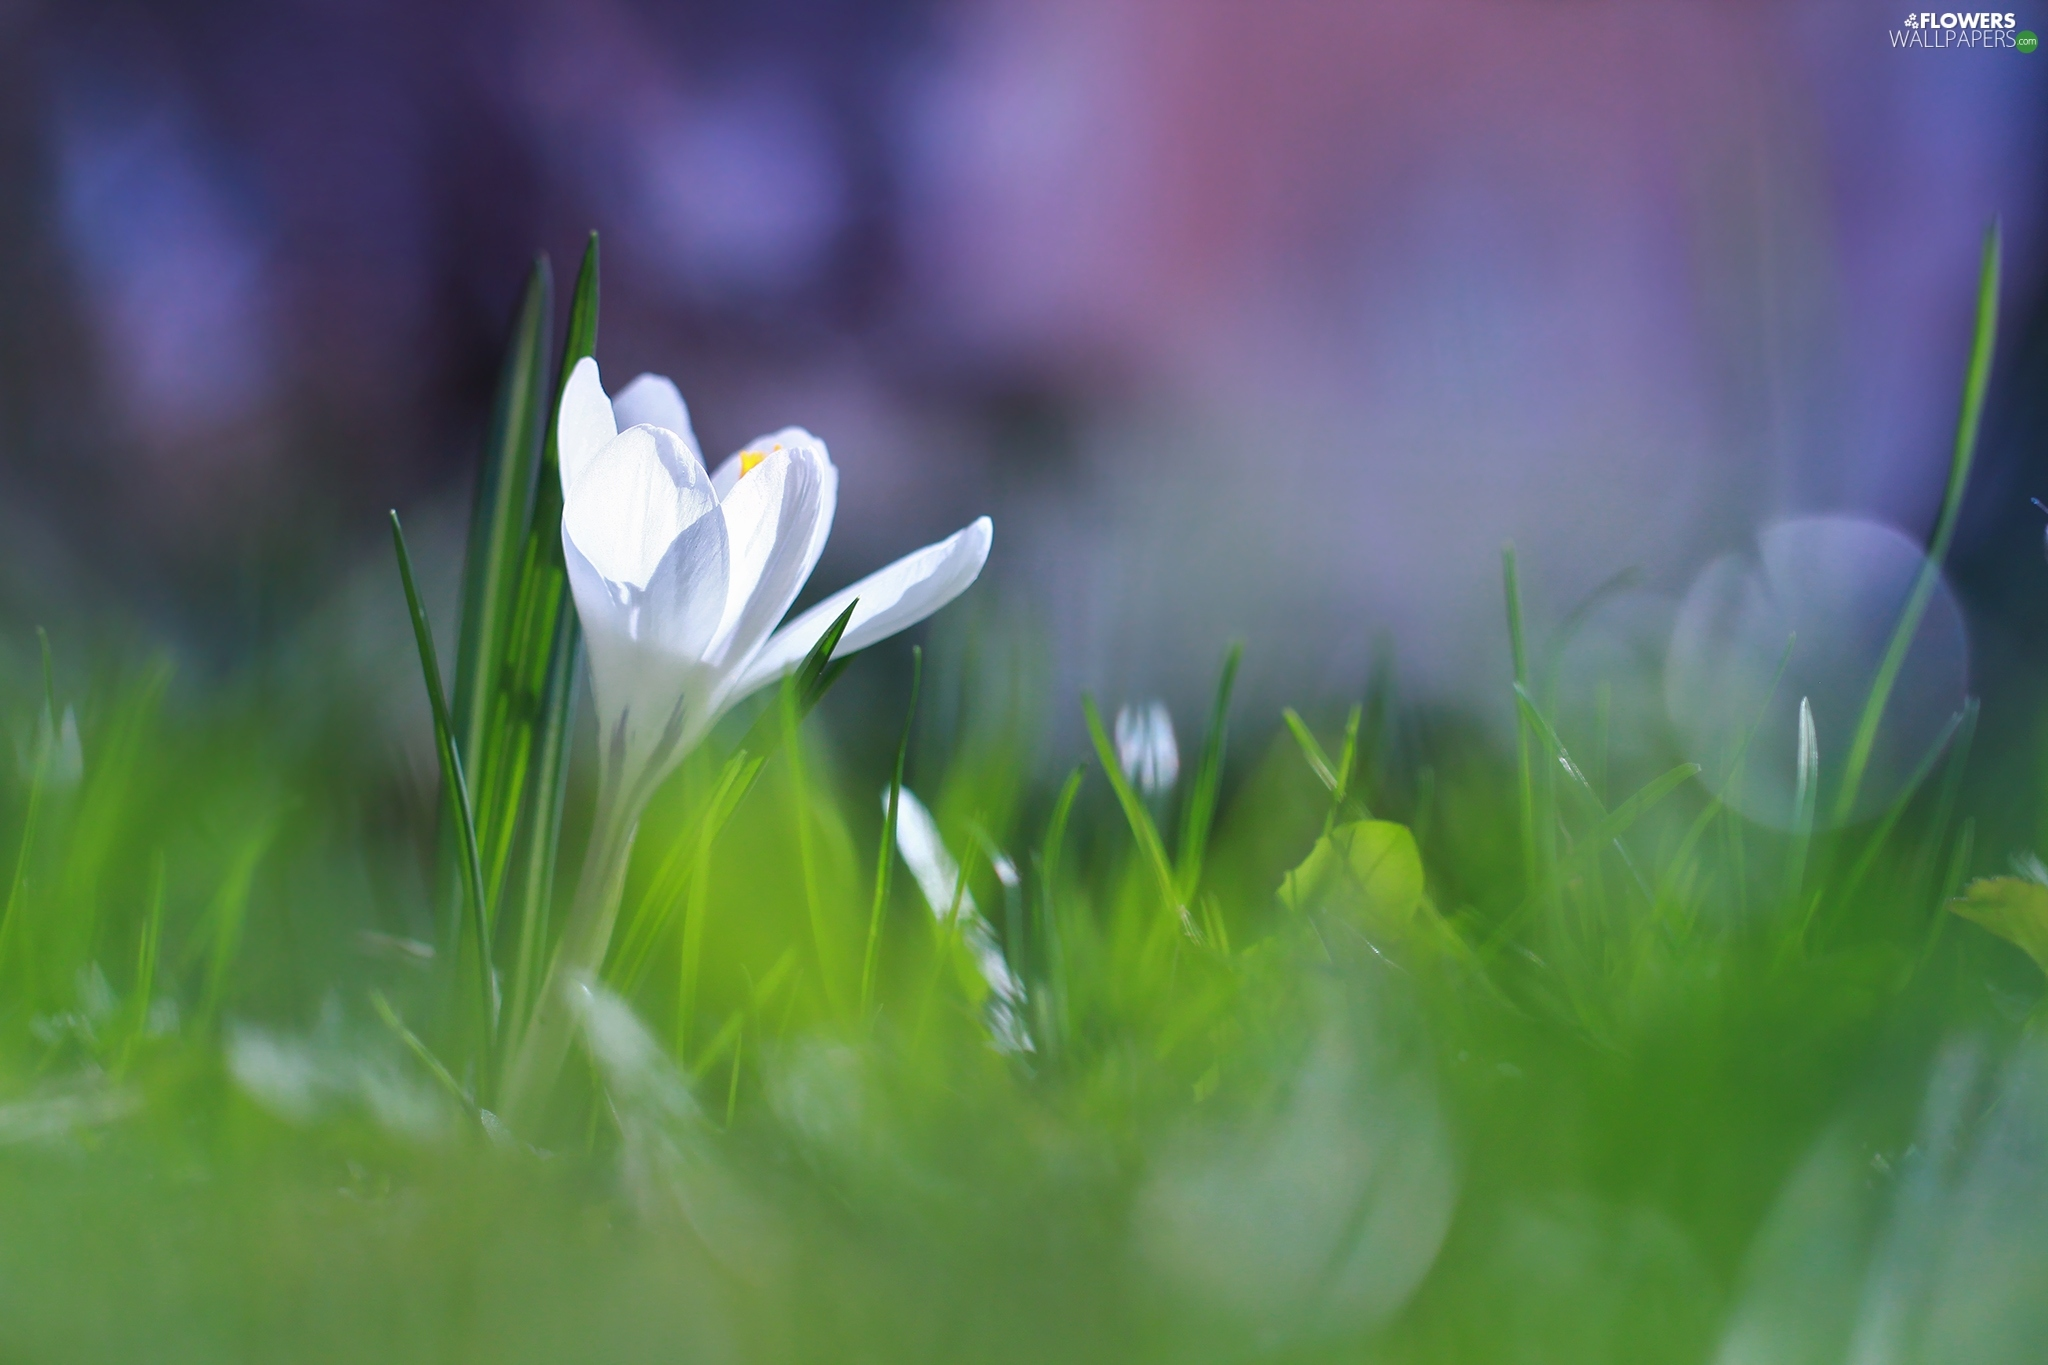 crocus, illuminated, White